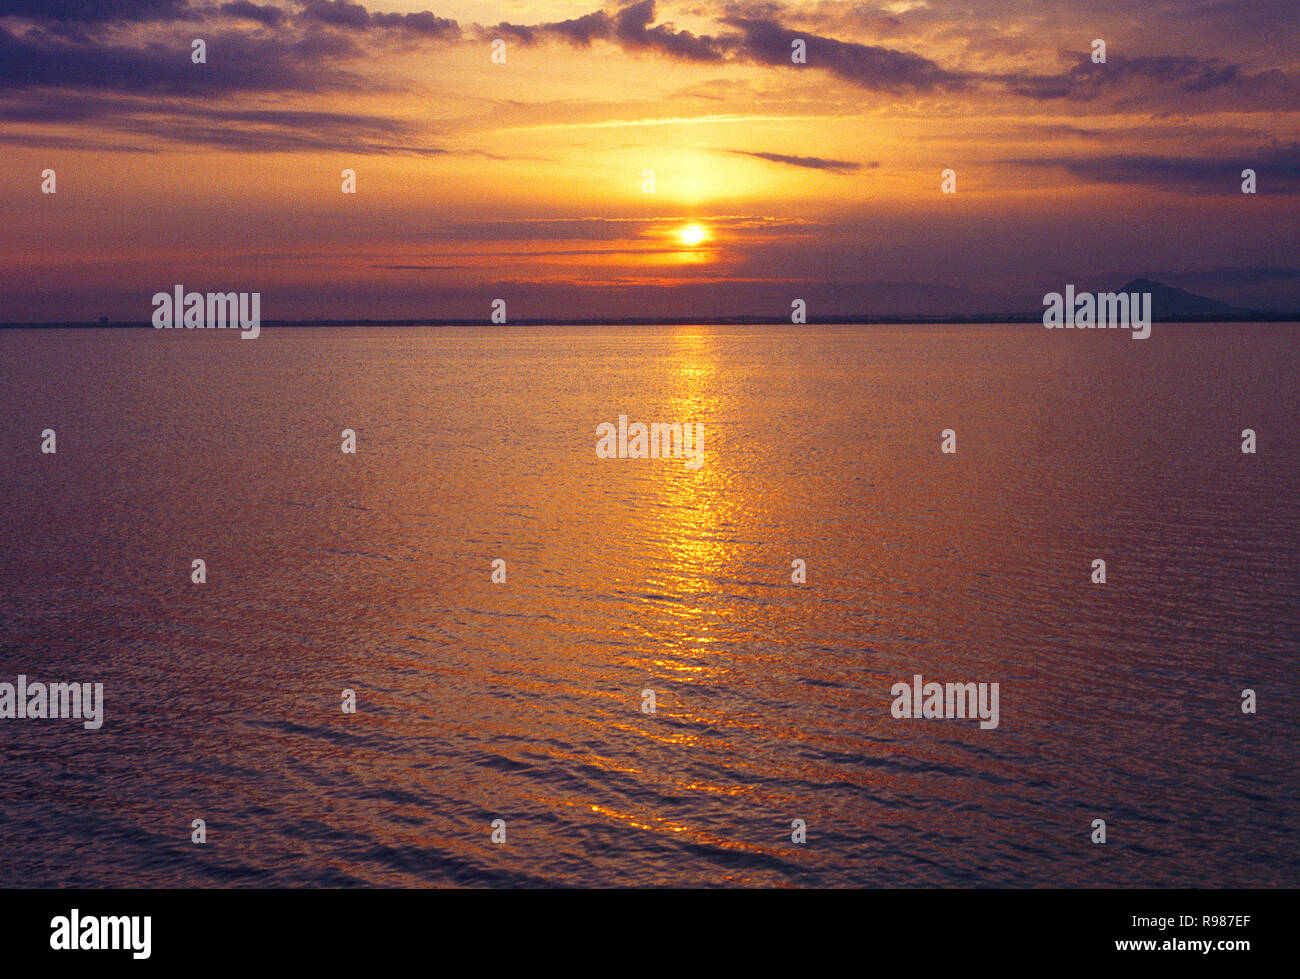 Sunset. La Manga del Mar Menor, Murcia, Spain. - Stock Image